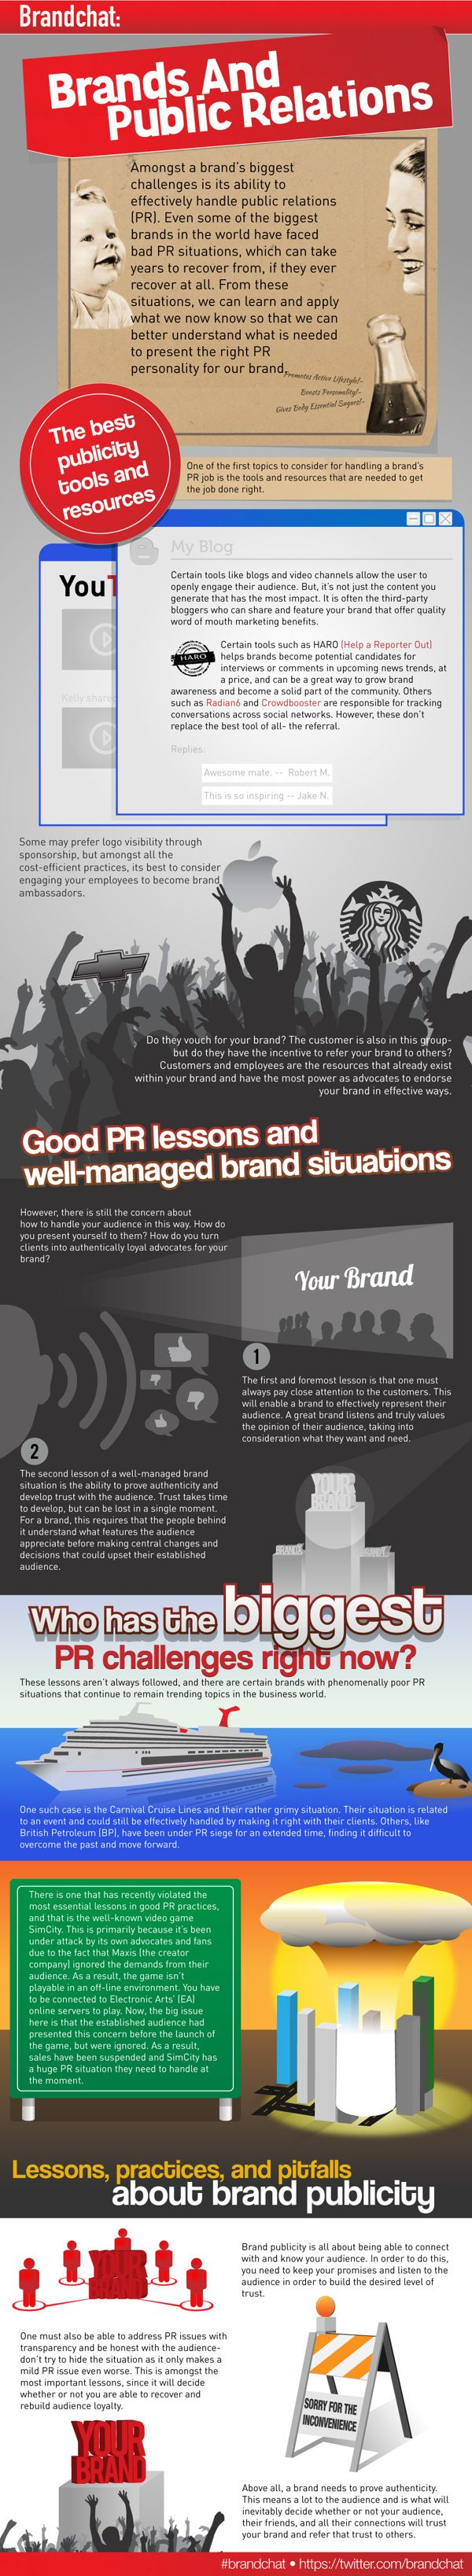 Brands and Public Relations